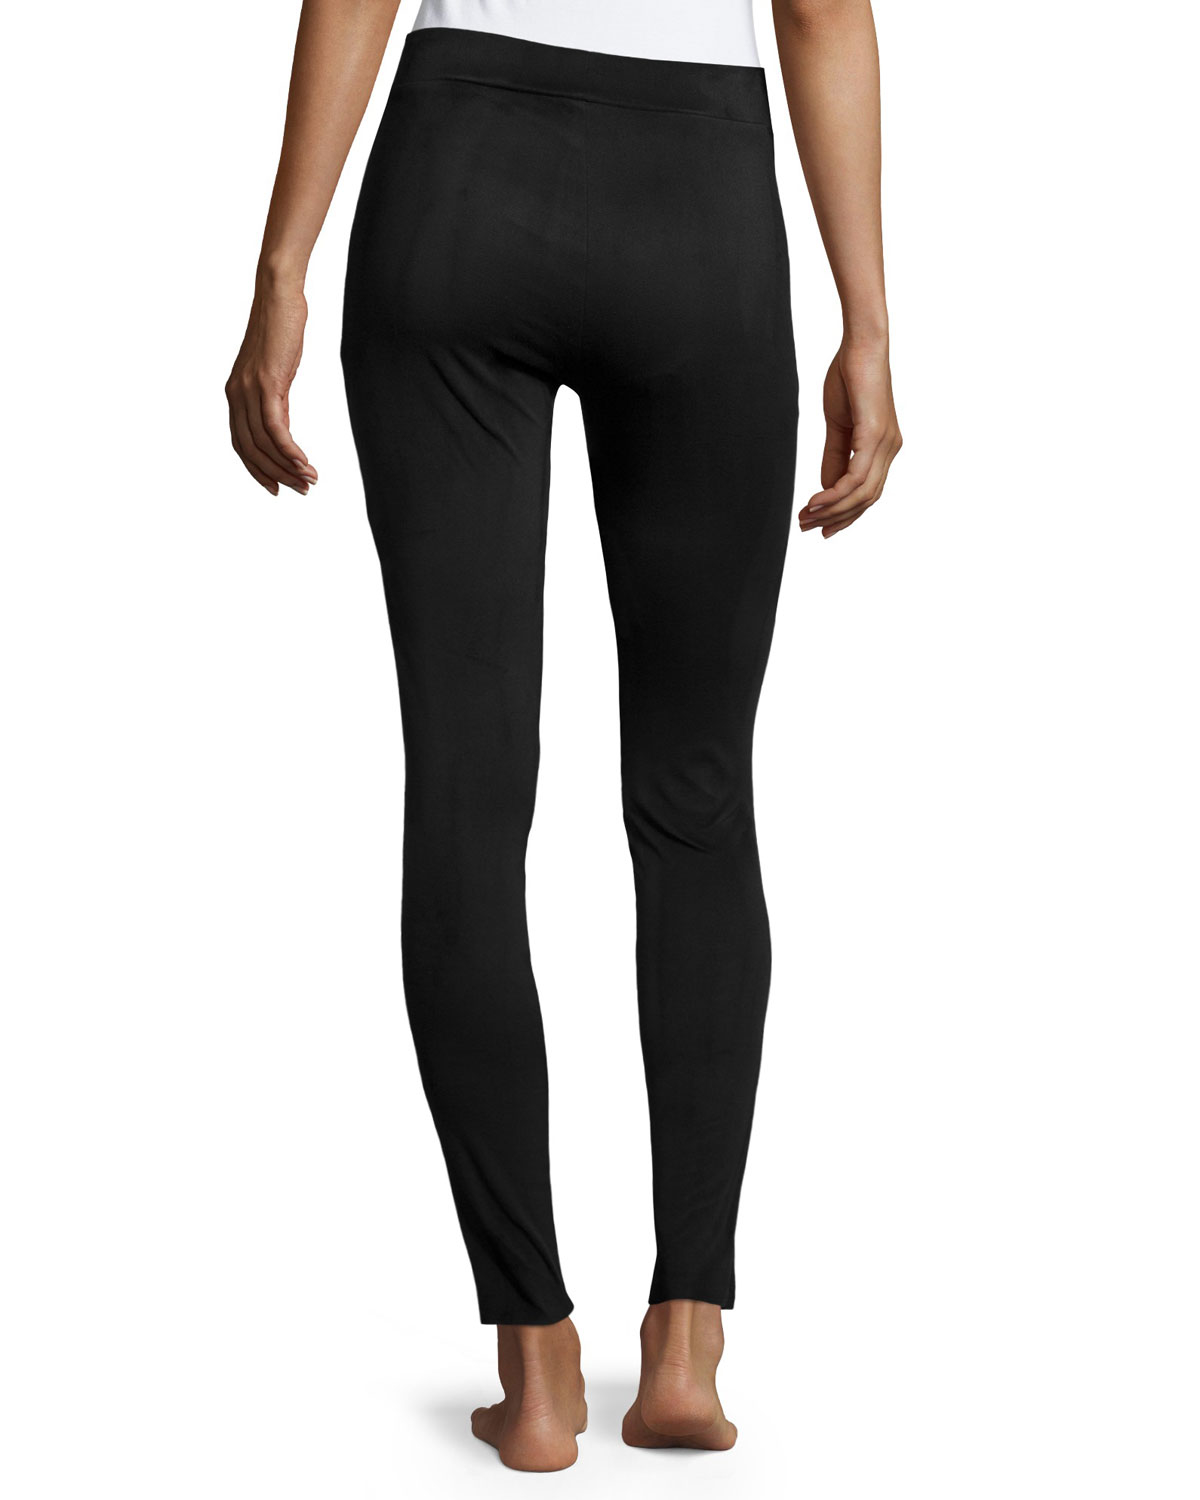 Find great deals on eBay for velour leggings. Shop with confidence.